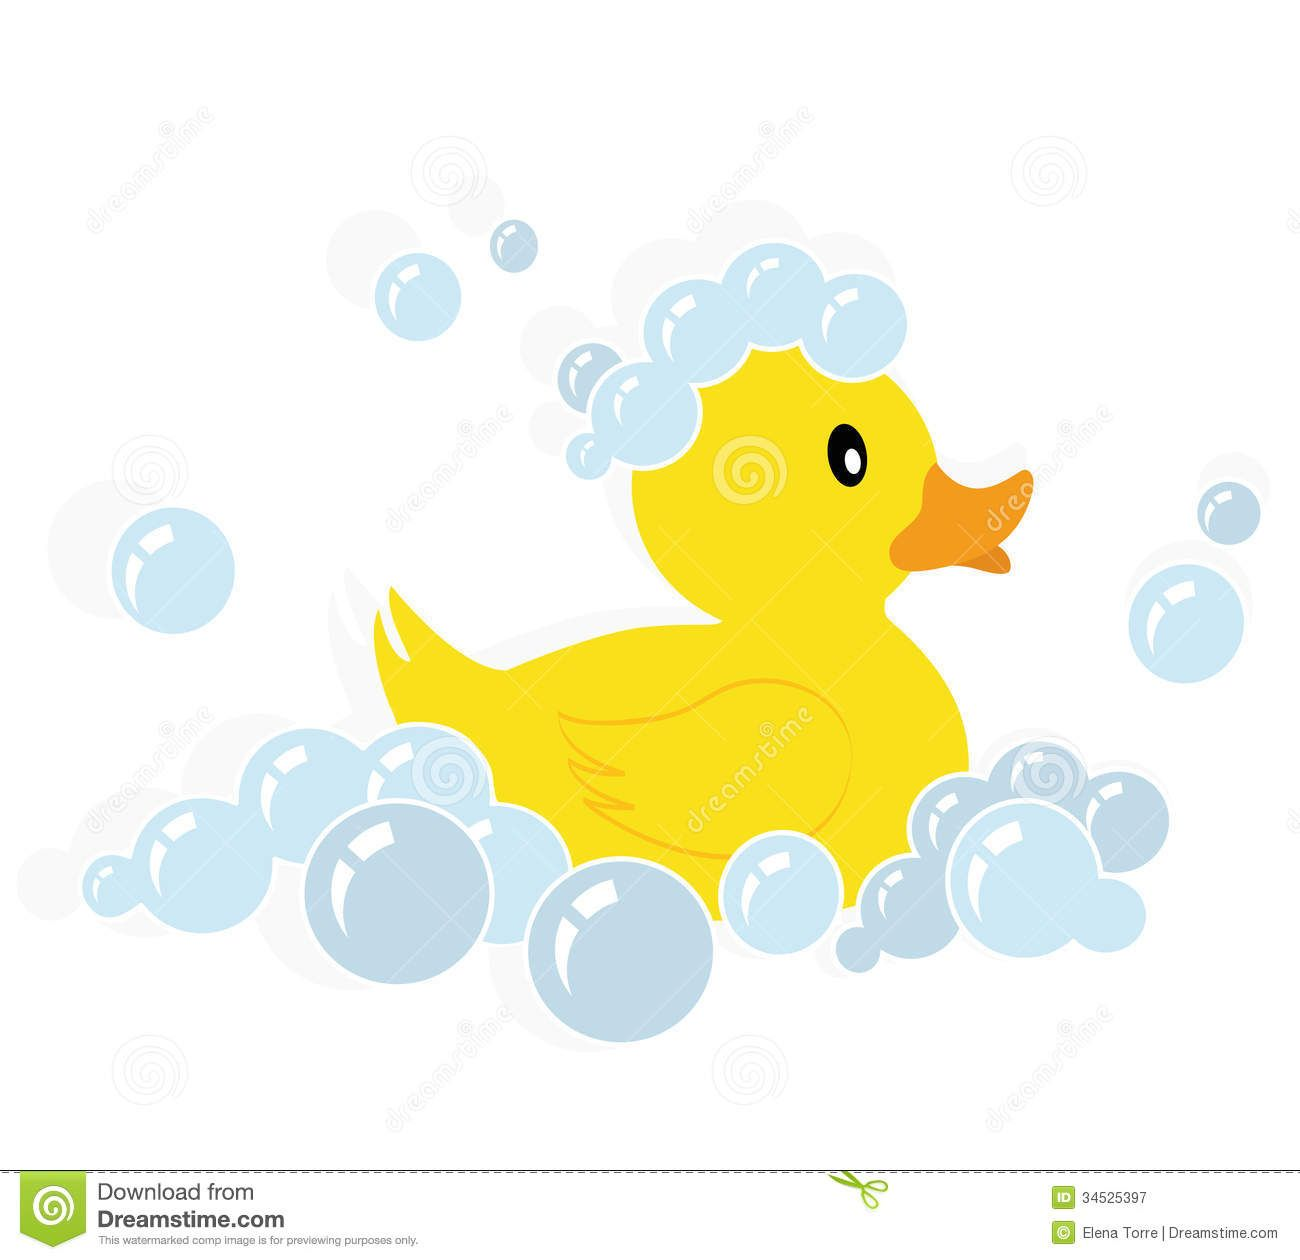 baby ducky vector google search vectors pinterest babies rubber duck and clip art. Black Bedroom Furniture Sets. Home Design Ideas